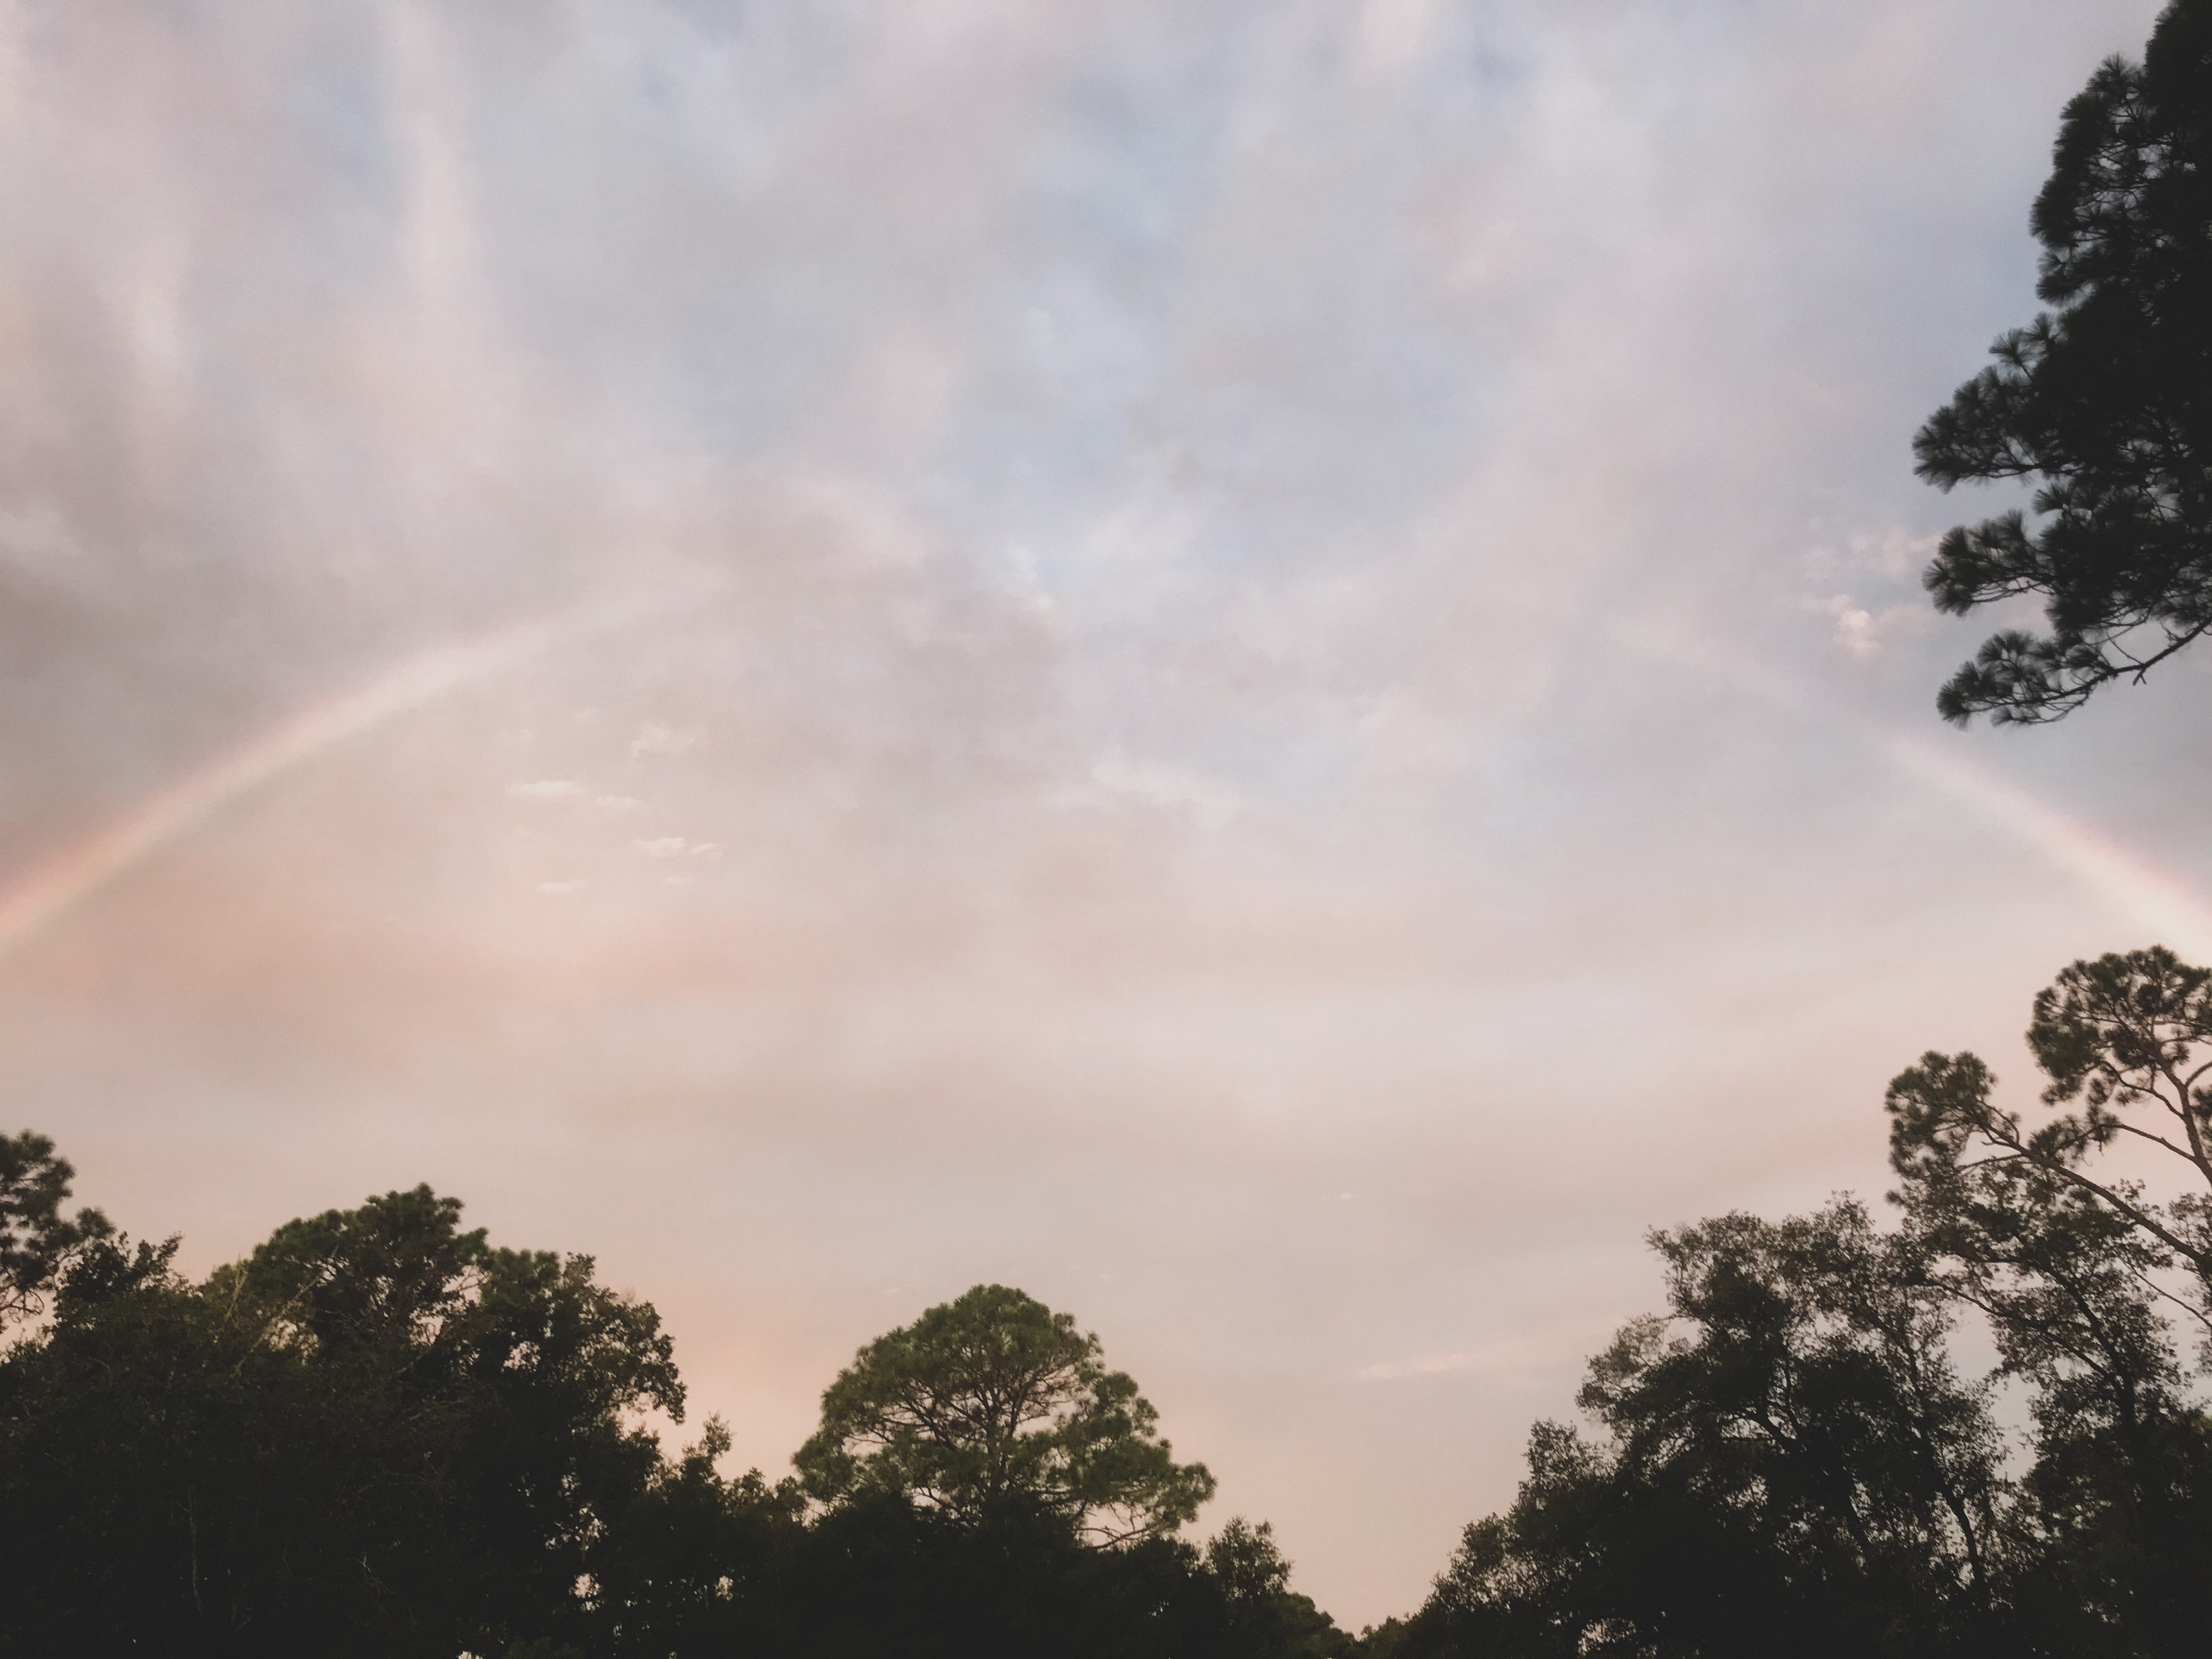 A rainbow with a faded middle in a dusty pink sky